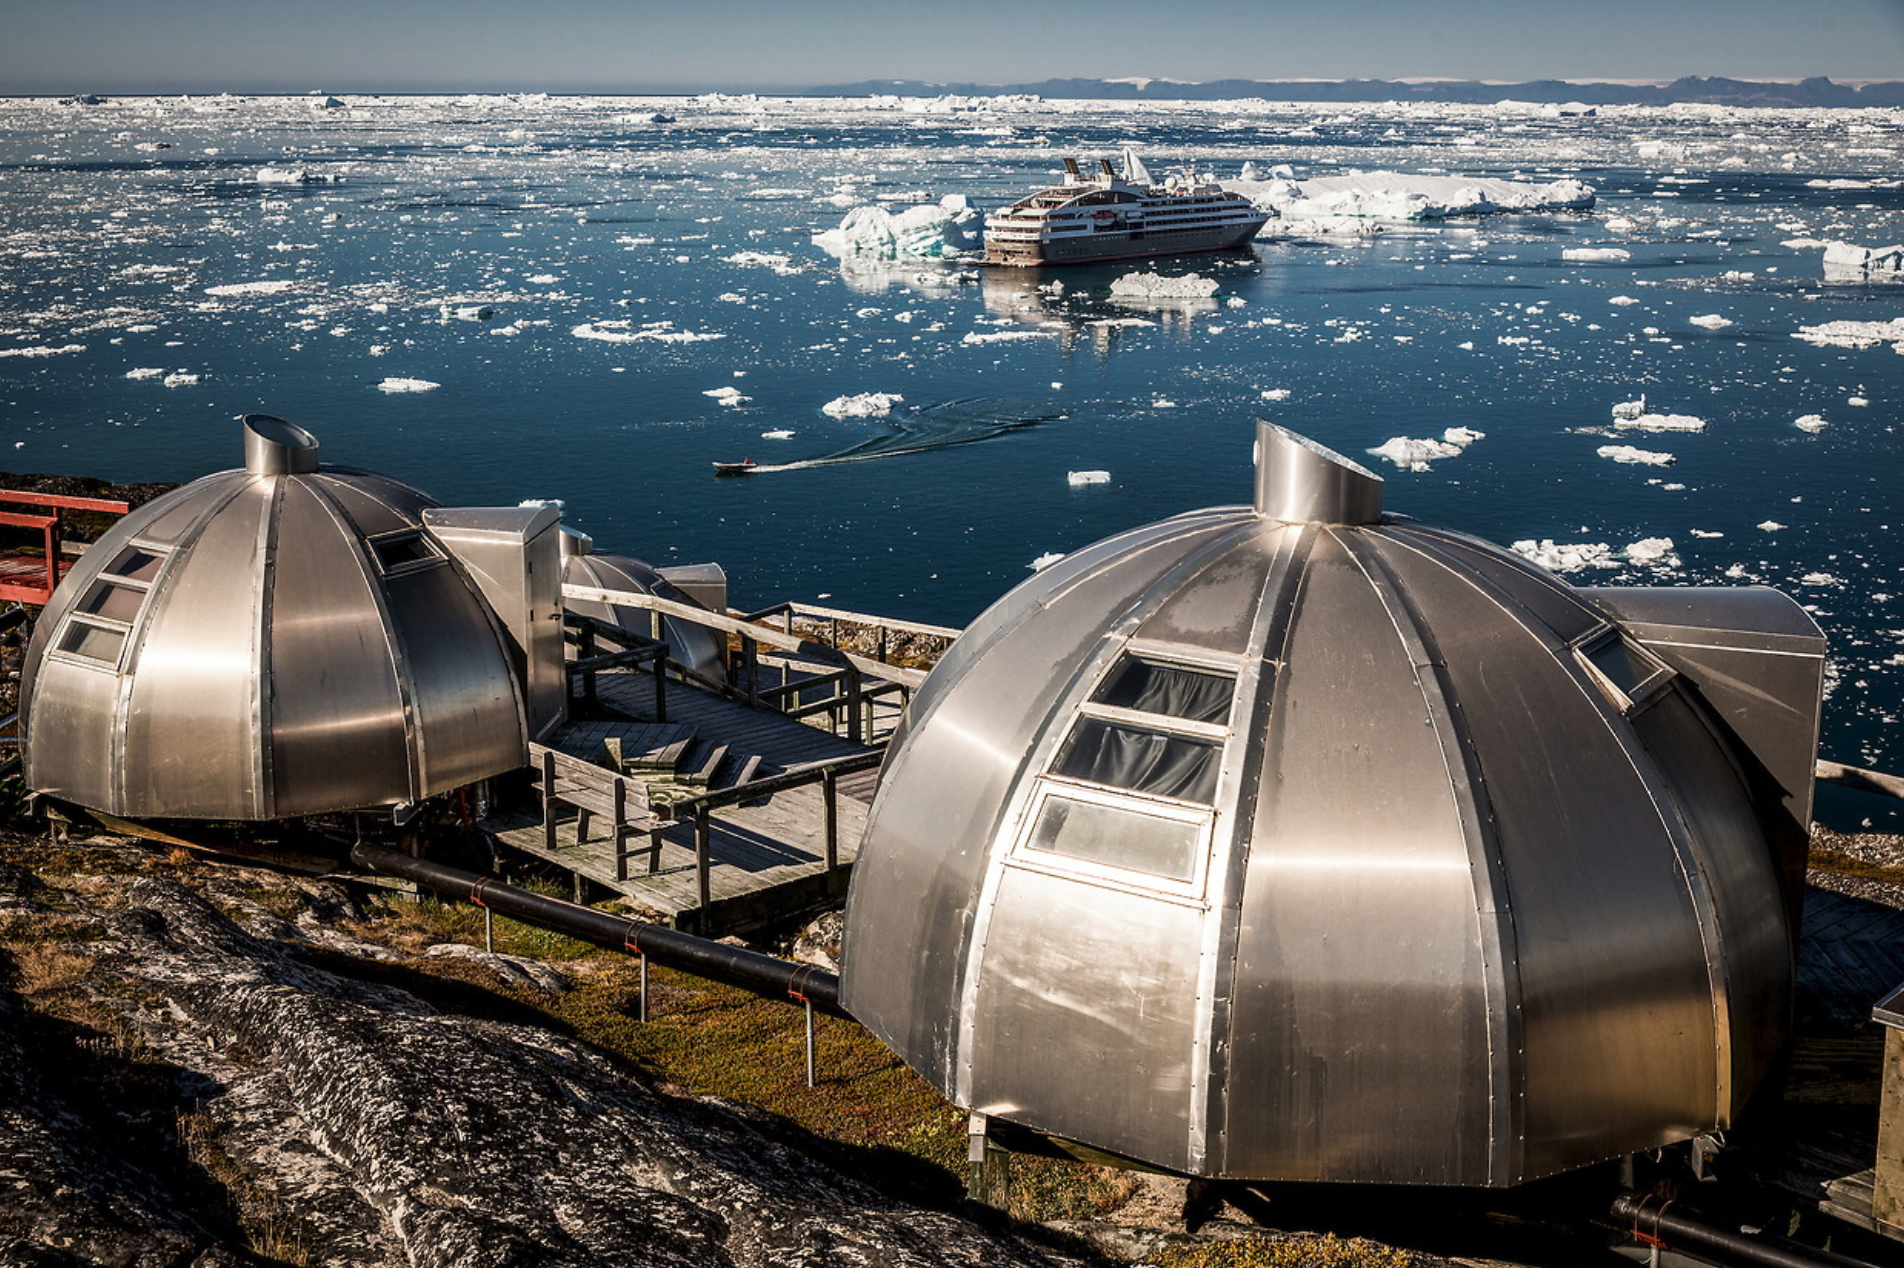 Hotel Arctic, Photo by Mads Pihl - Visit Greenland